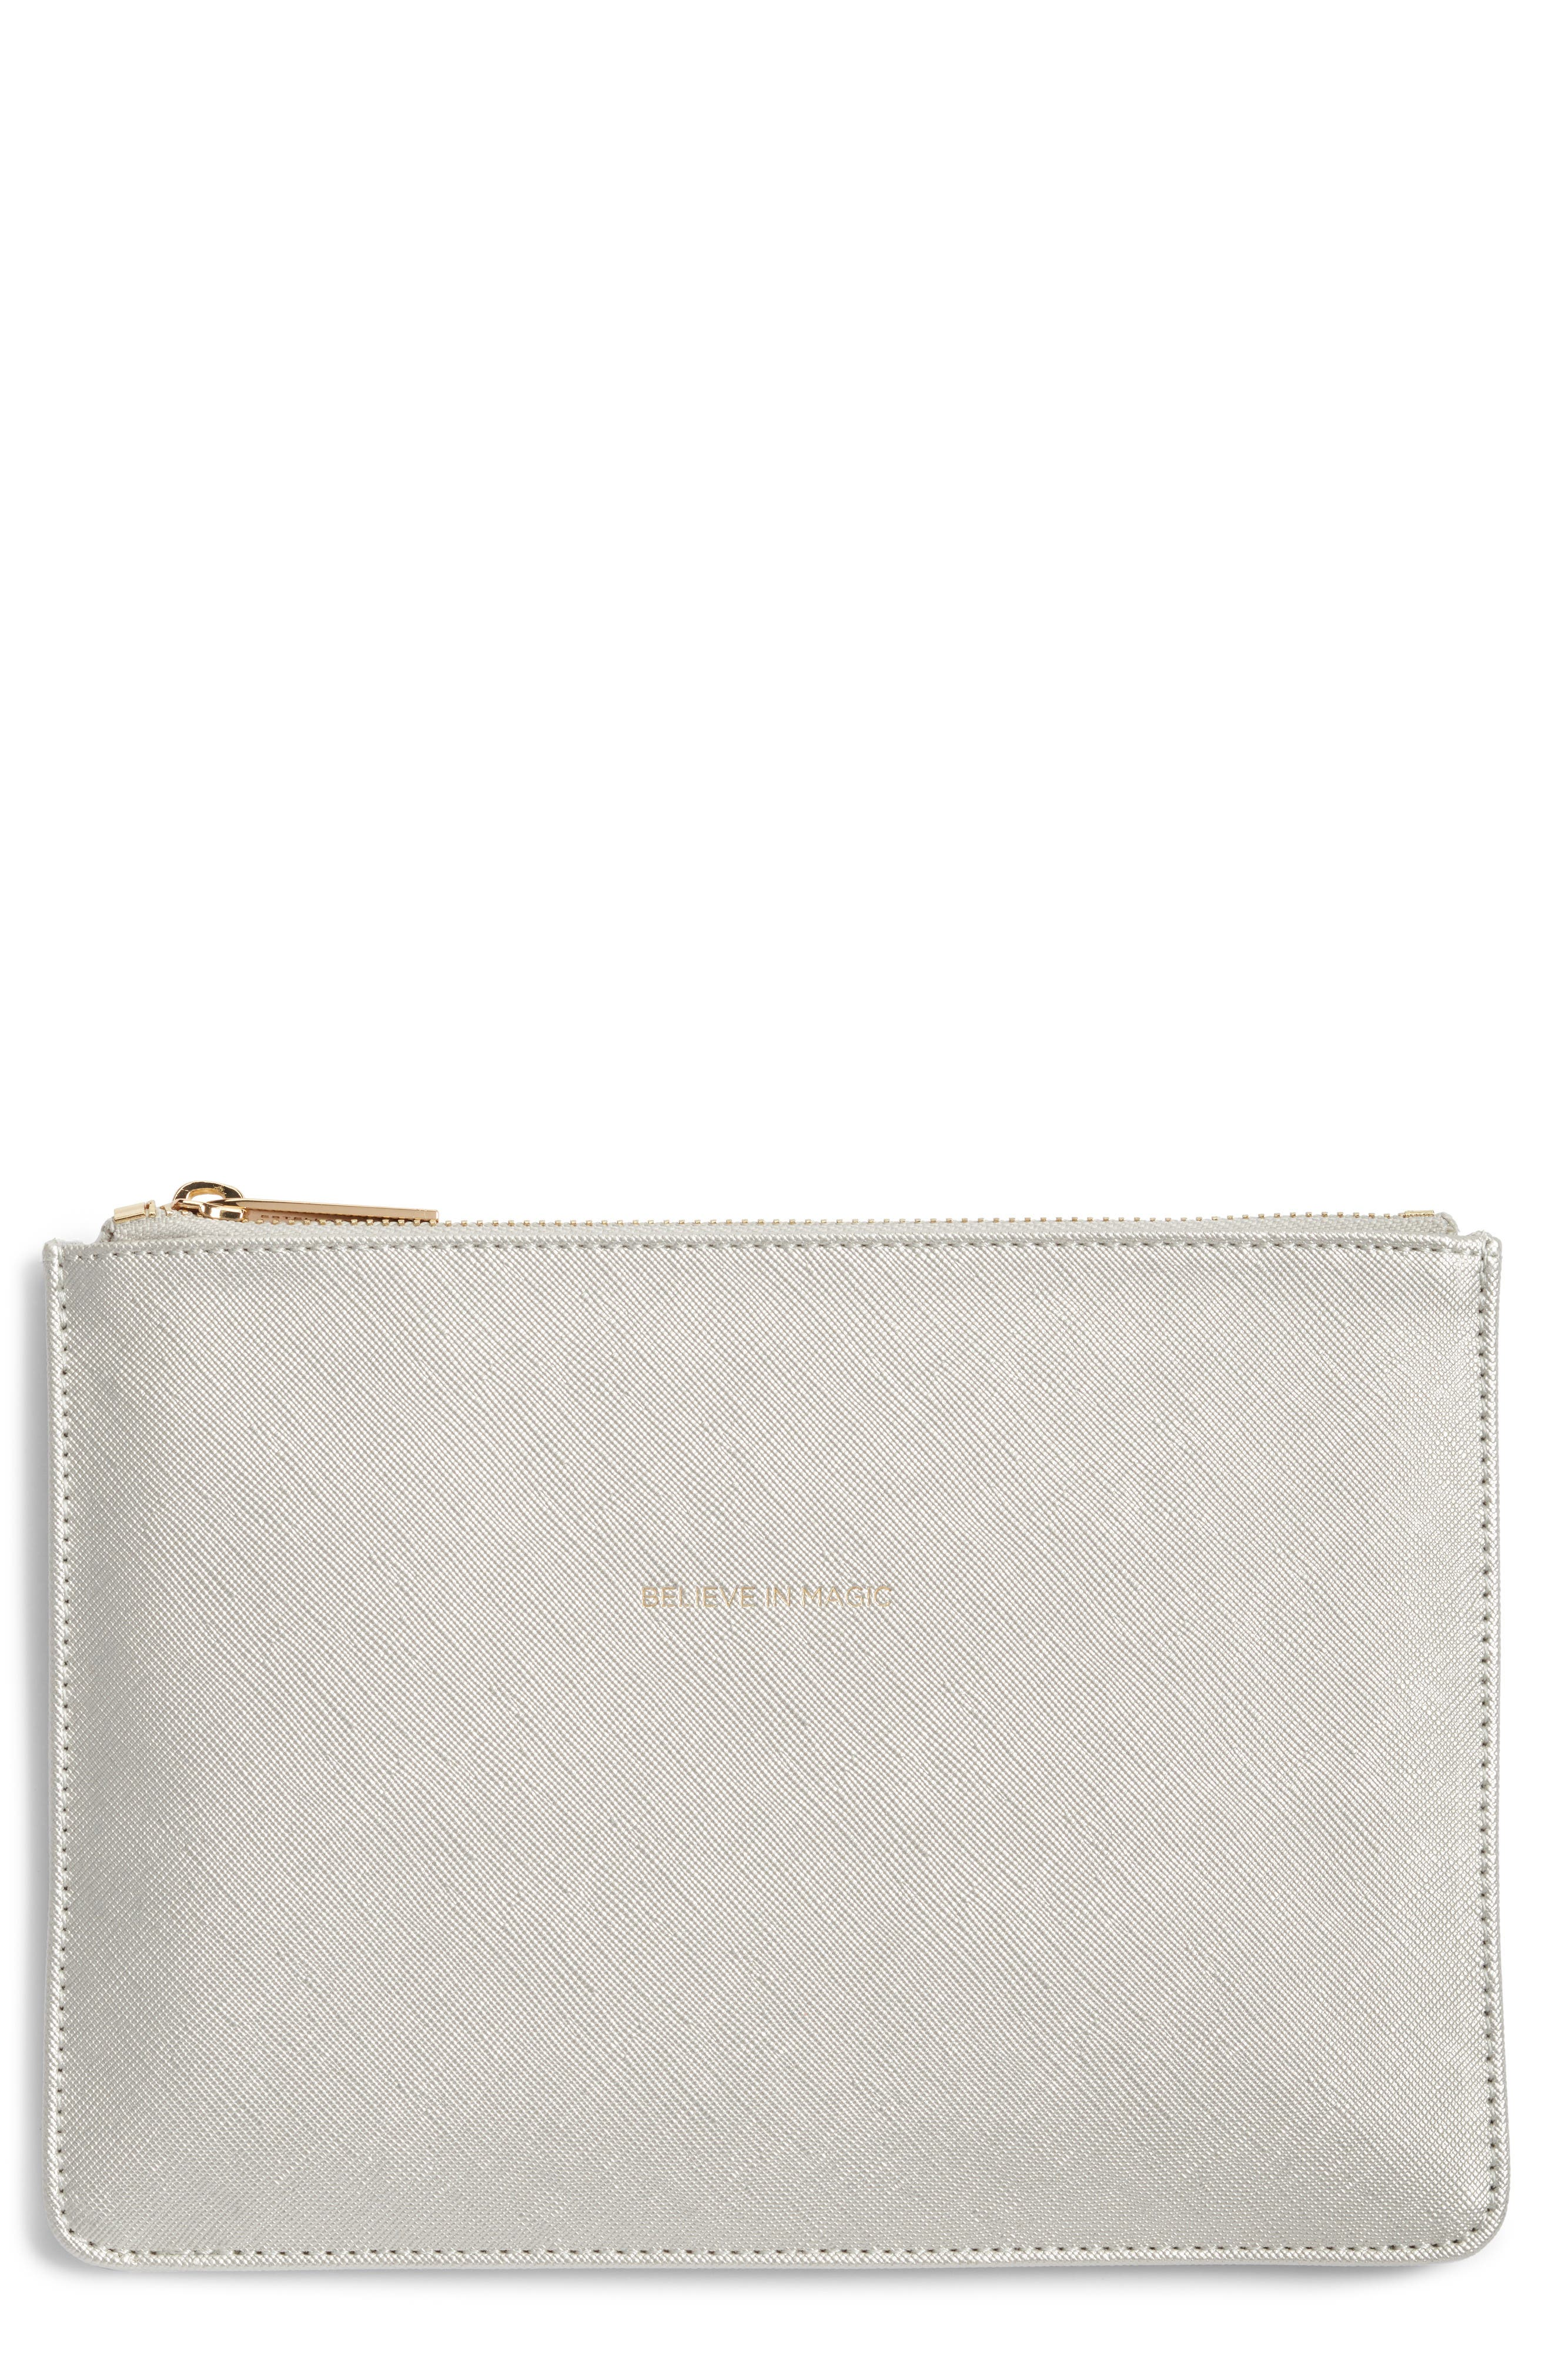 ESTELLA BARTLETT,                             Medium Zip Pouch,                             Main thumbnail 1, color,                             SILVER - BELIEVE